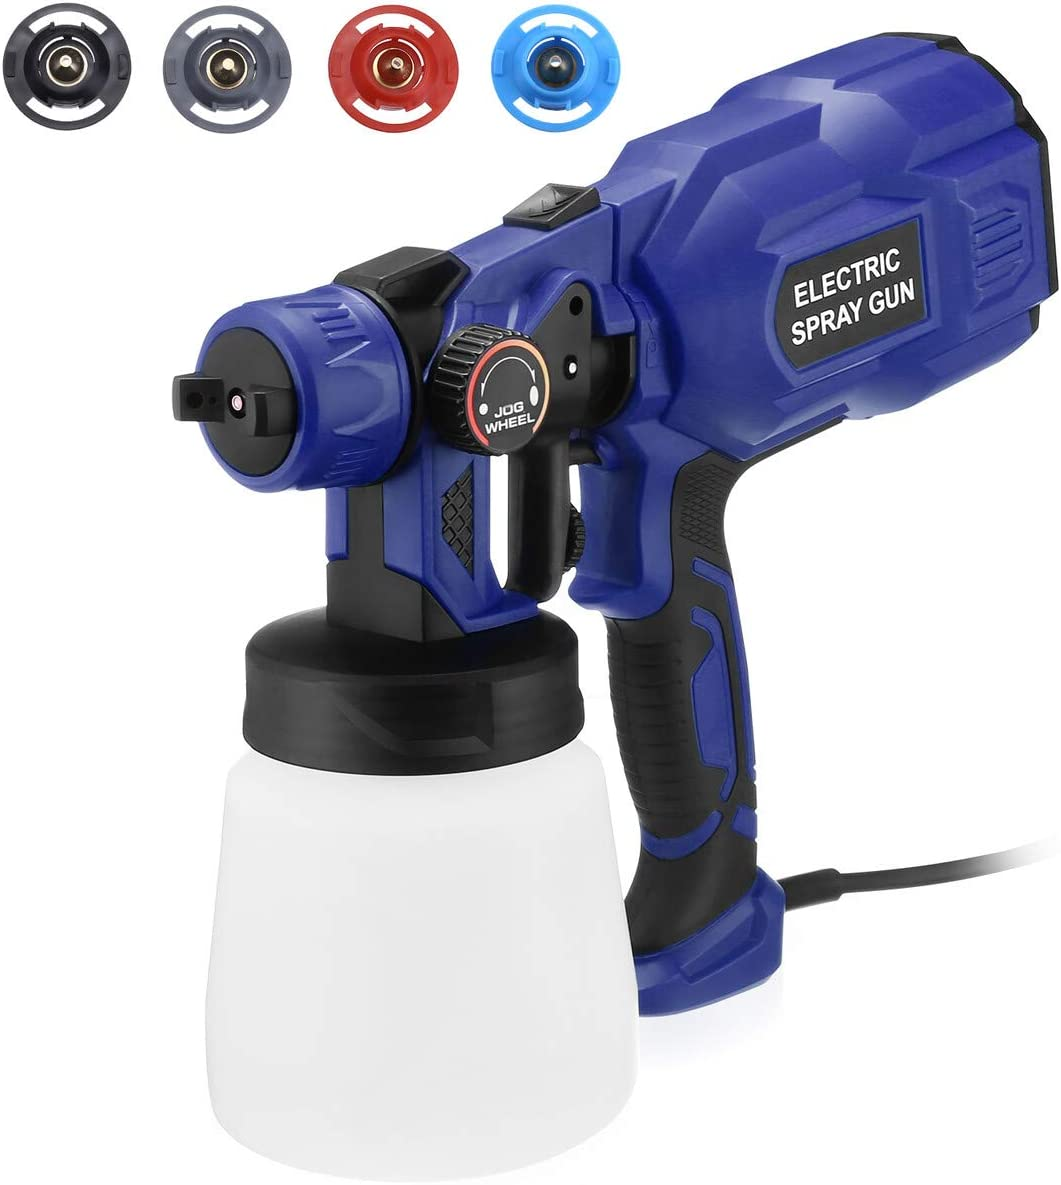 Powerextra Paint Sprayer-750 Watts High Power HVLP Spray Gun with 4 Nozzles & 3 Patterns Lightweight for Home,Furniture, Fence, Car, Bicycle, Chair, Watering